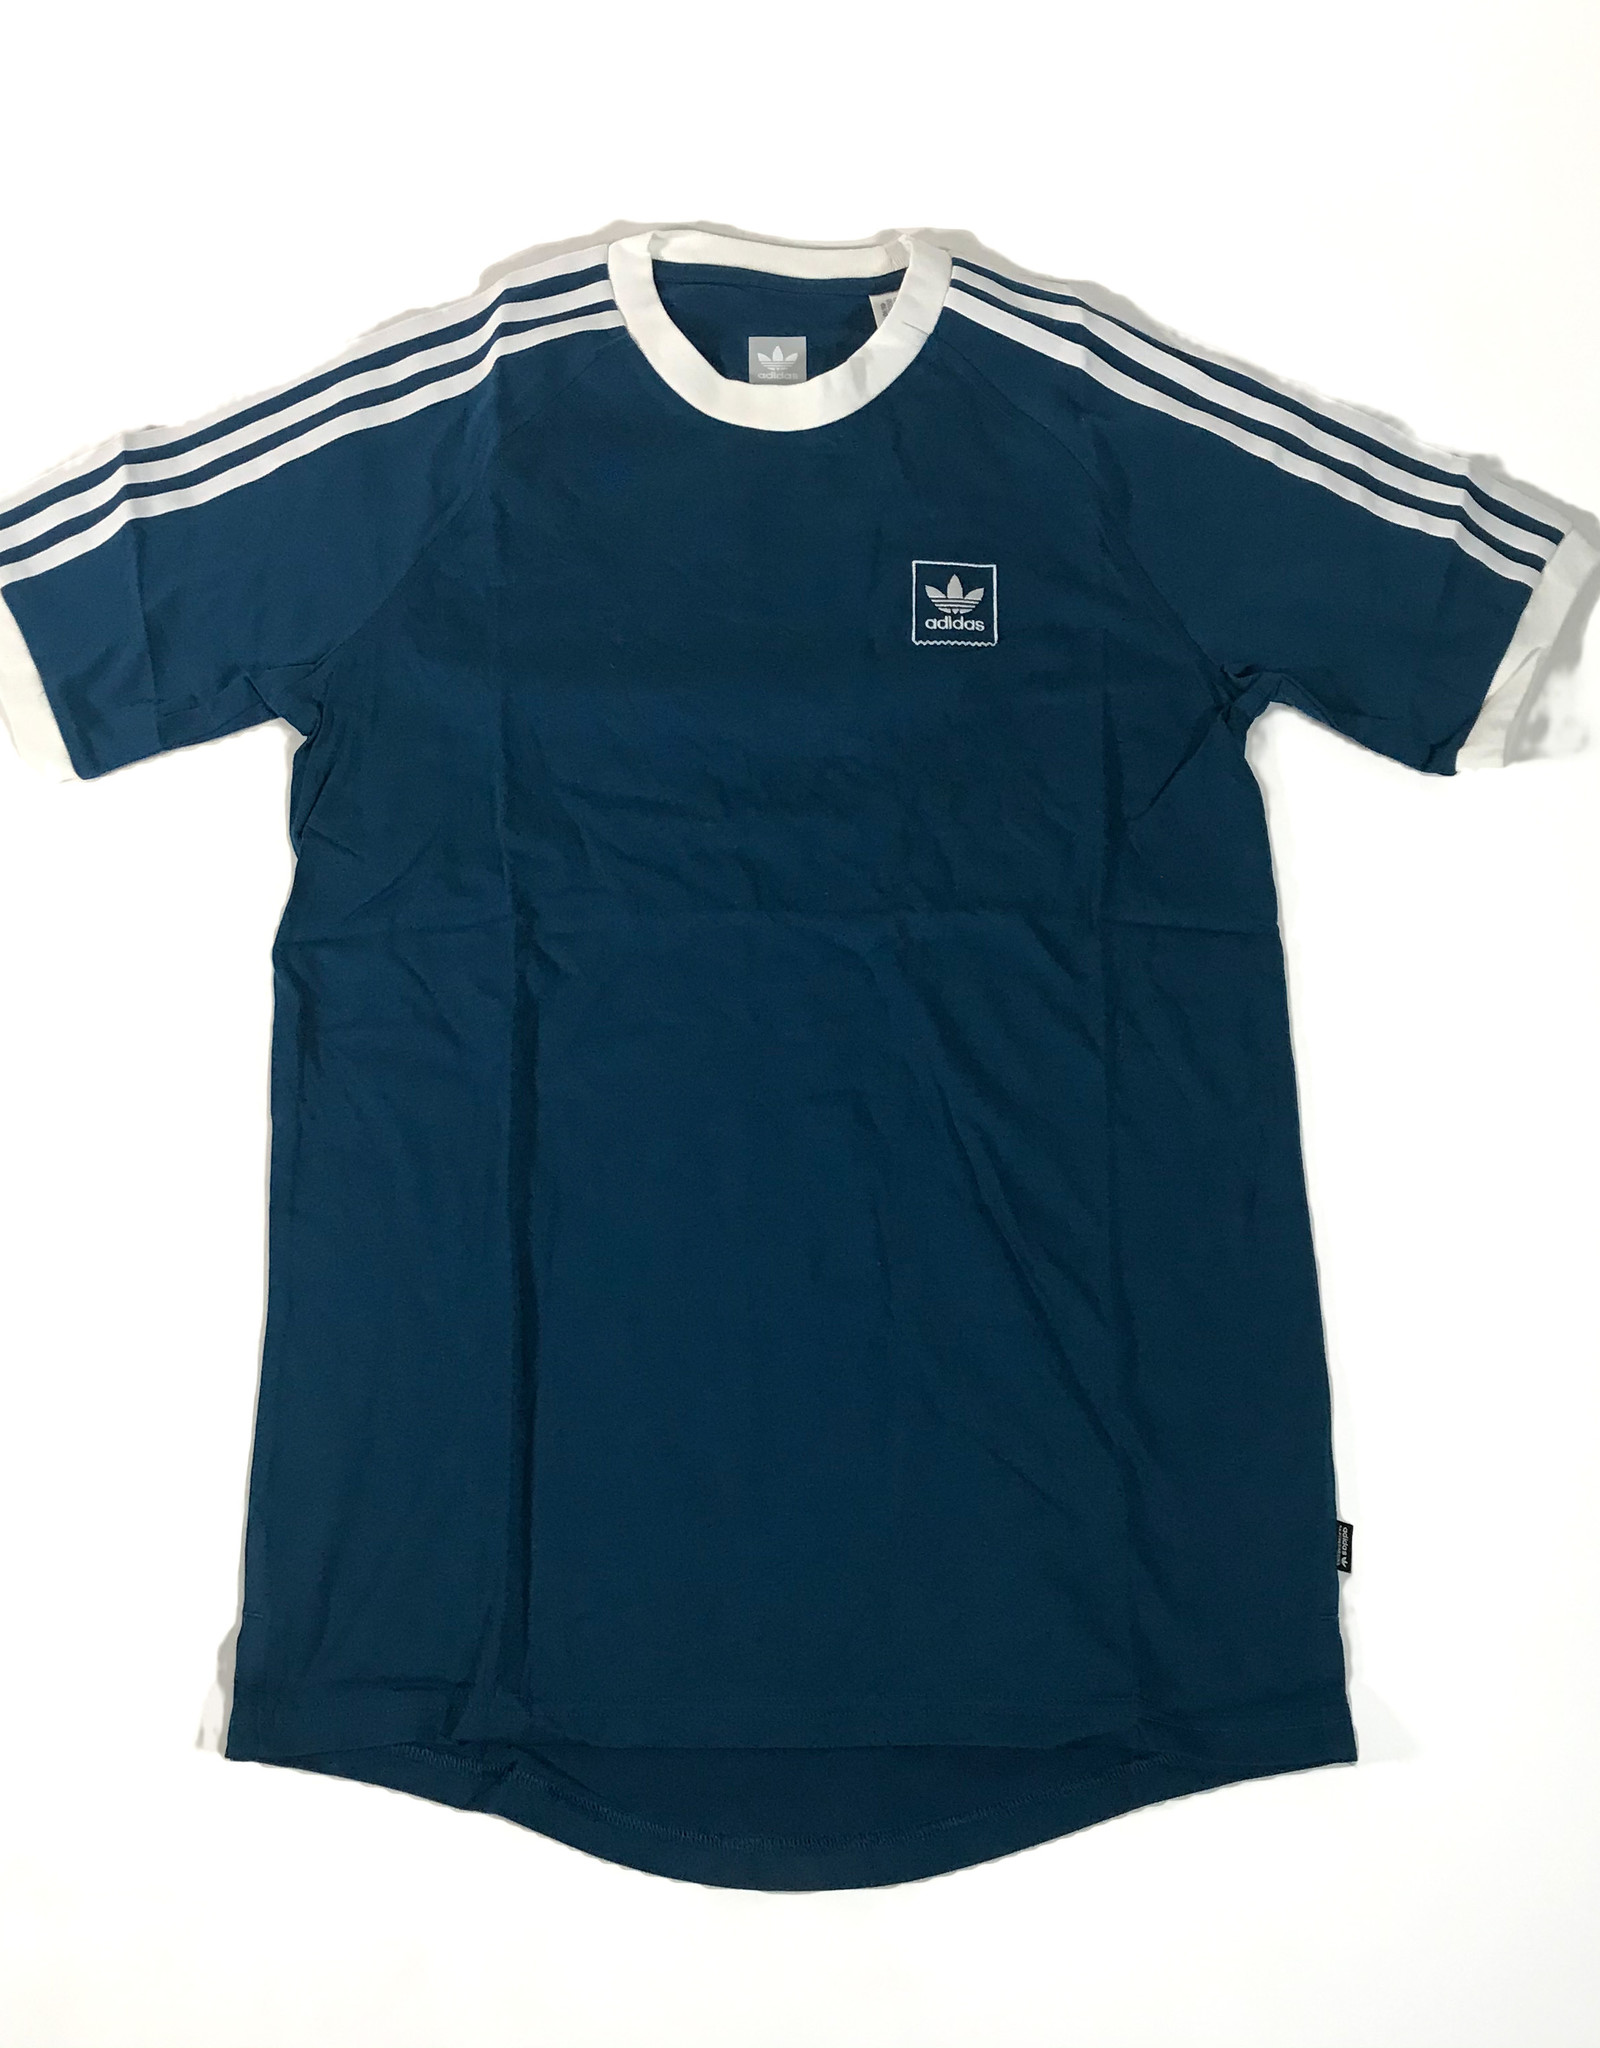 ADIDAS ADIDAS CALI BB T-SHIRT - BLUE/WHITE - SMALL